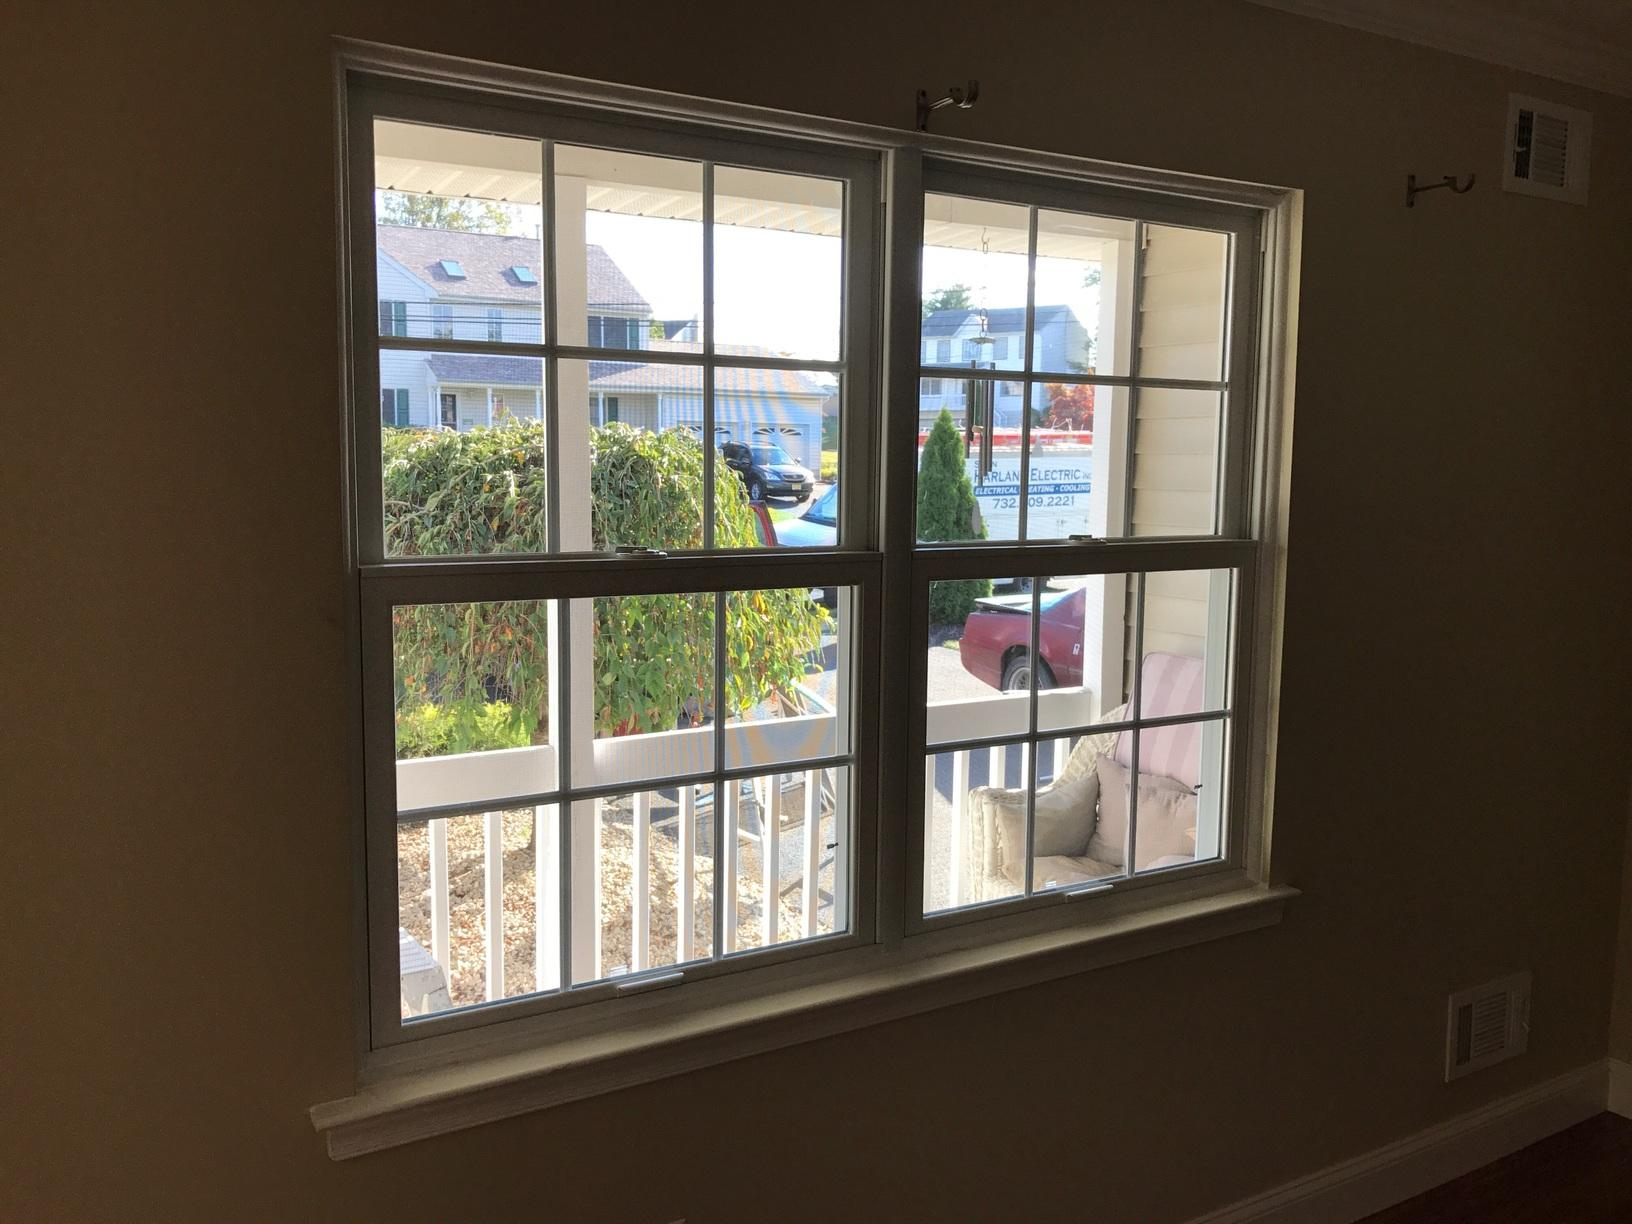 Marvin Infinity Double Hung Window Installation in Monroe Township, NJ